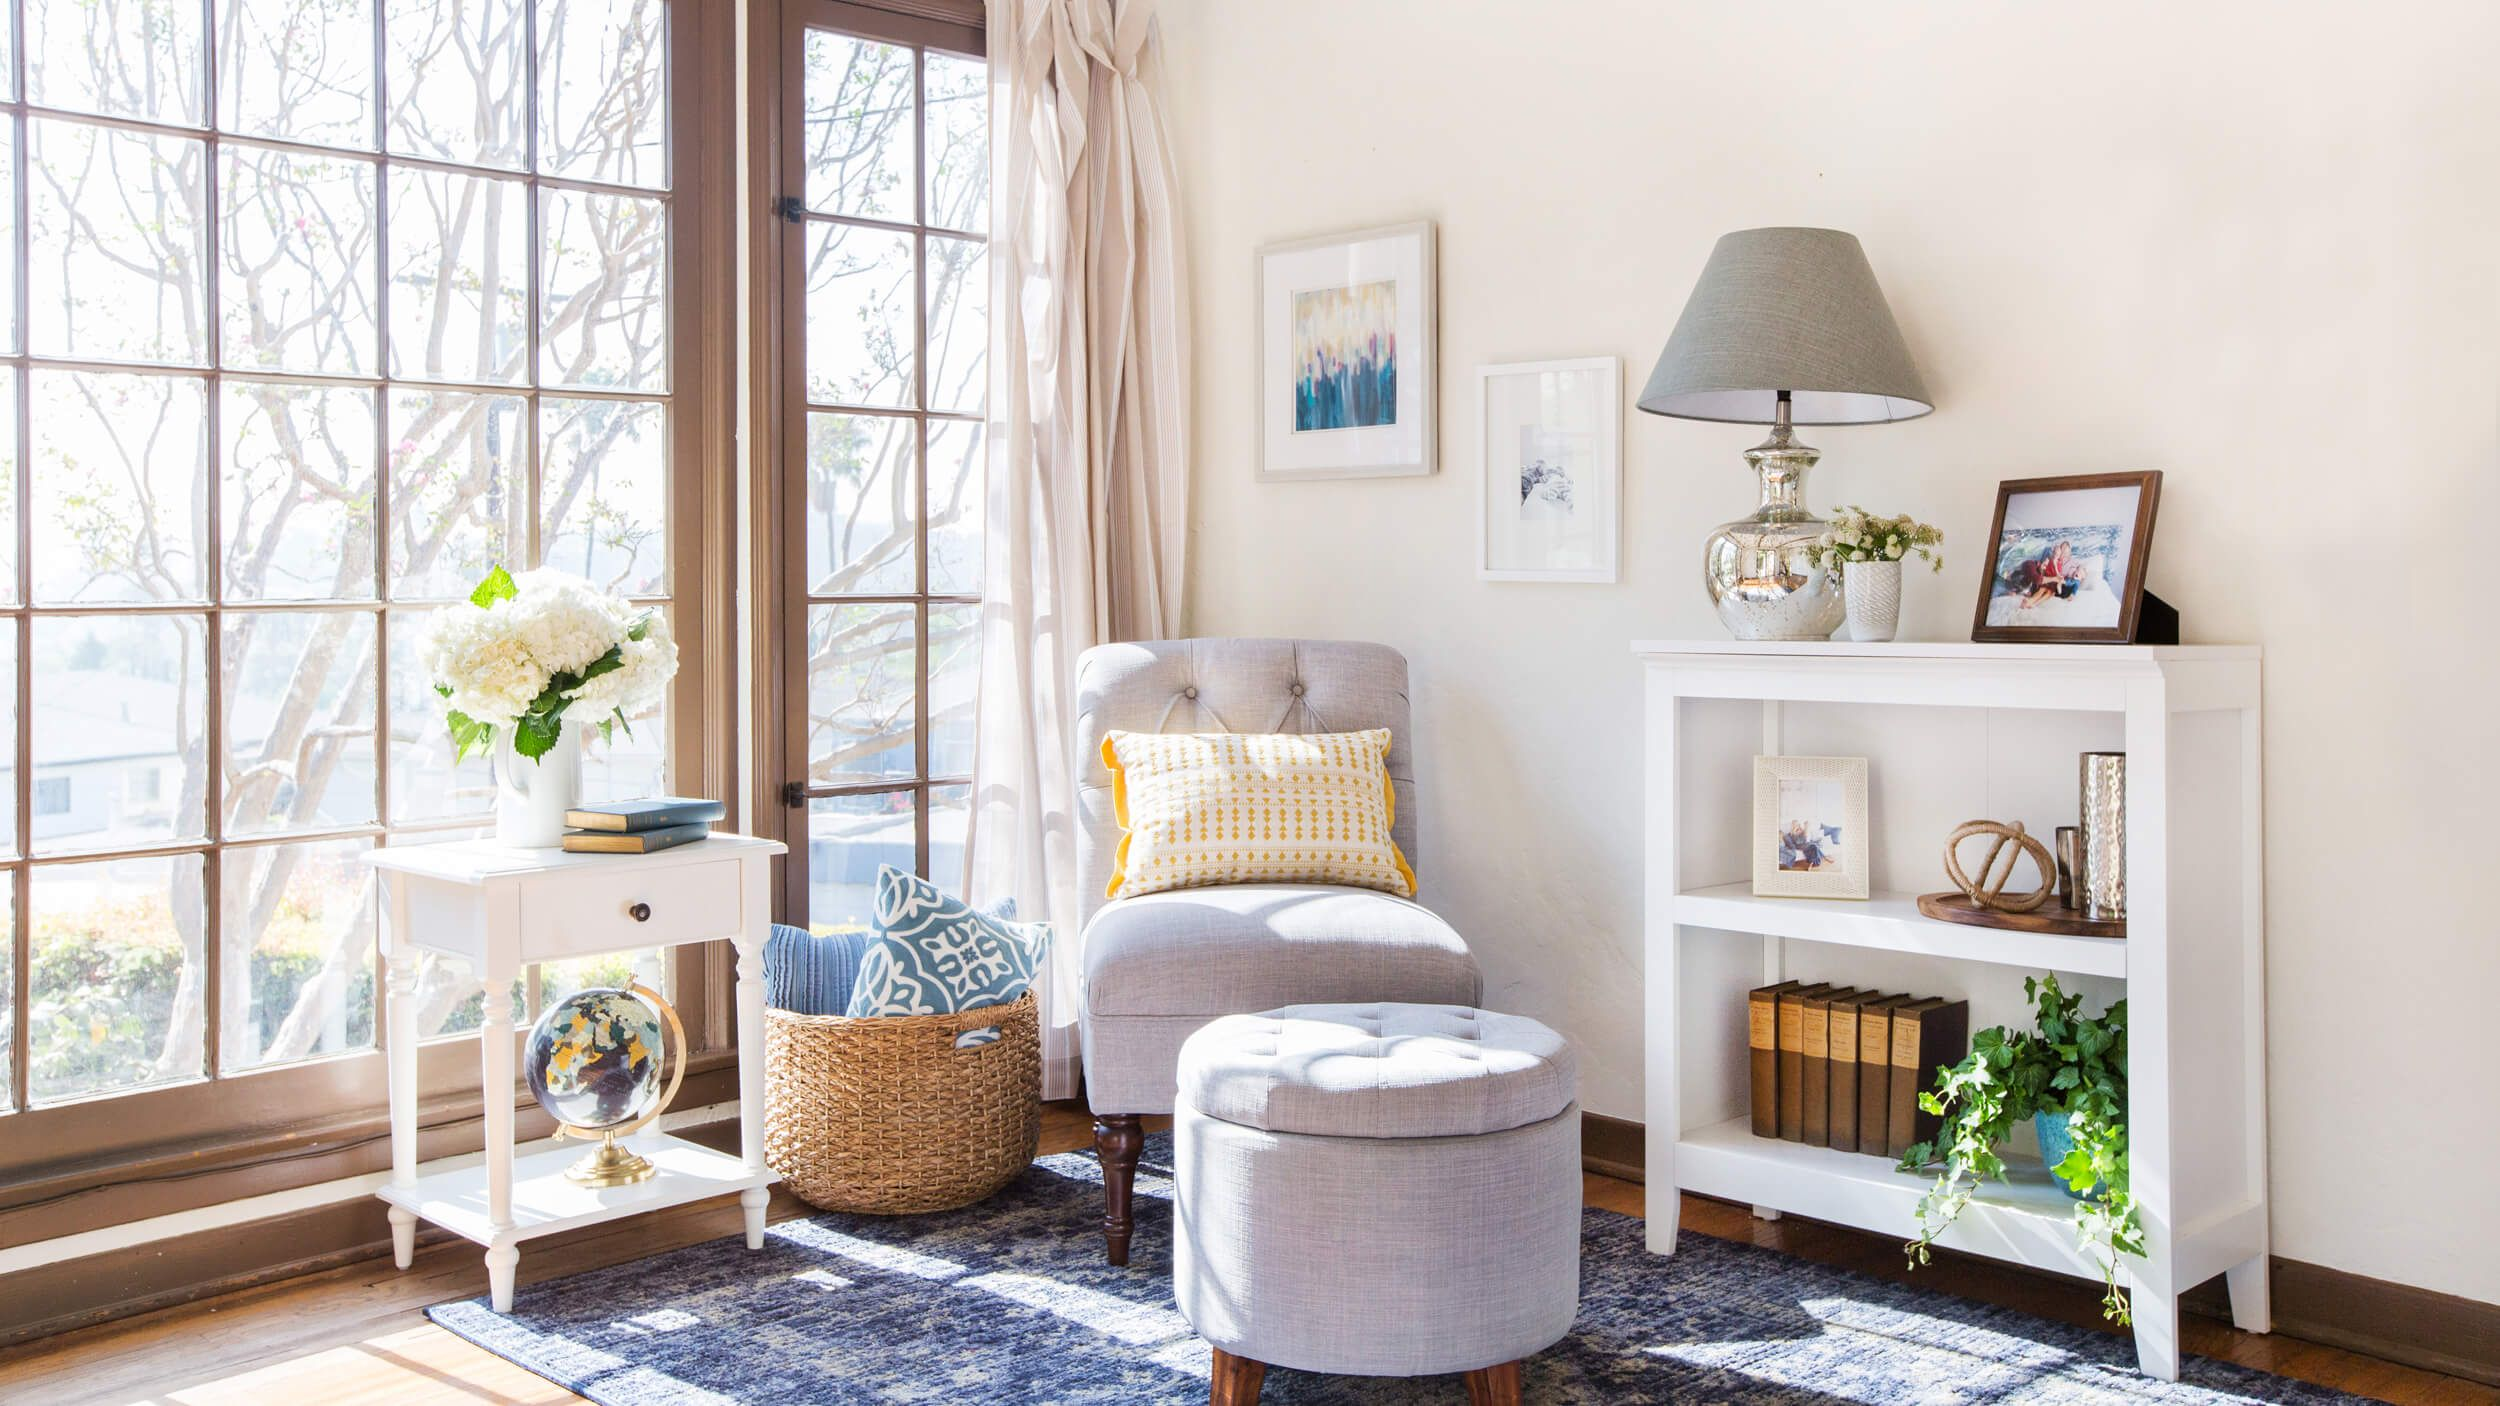 traditional style - vignette from modern pieces | Decor & Styling ...